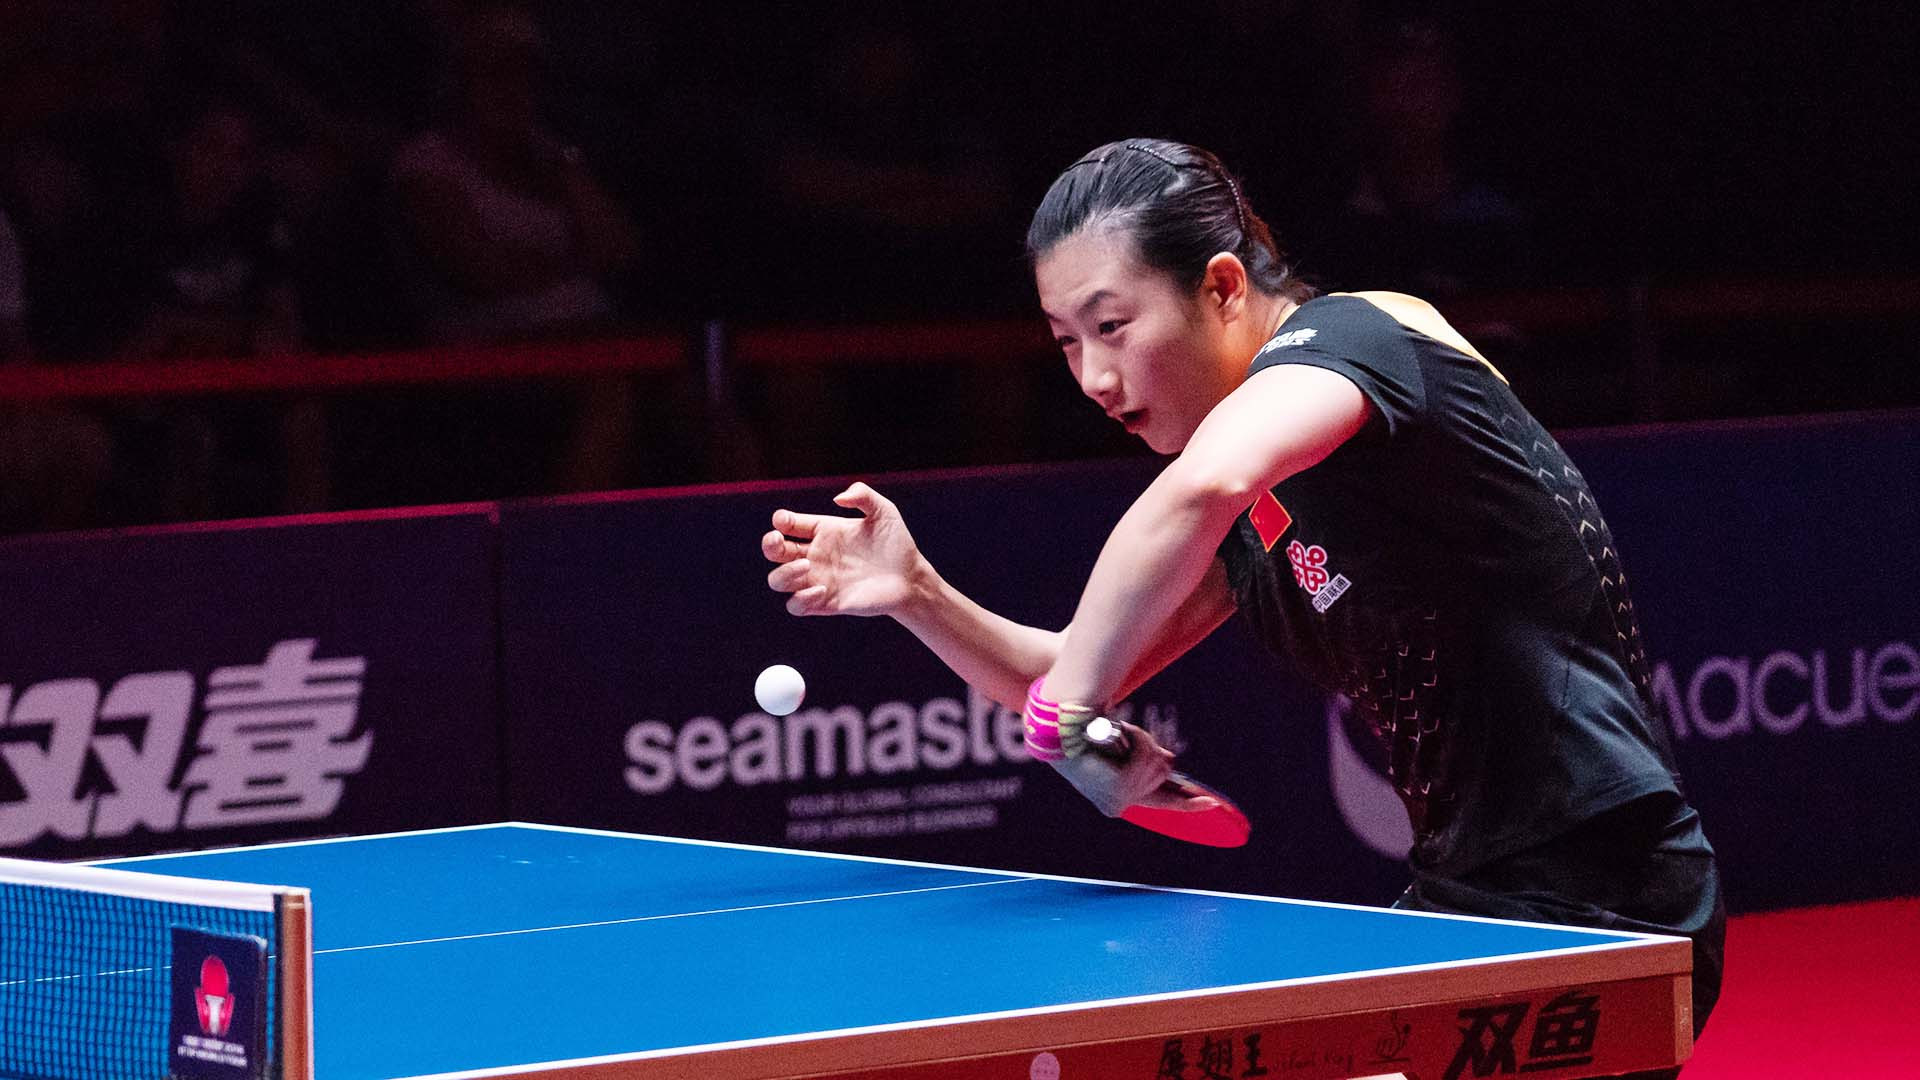 Xu Xin and Ding Ning earn Chinese double at ITTF Bulgaria Open